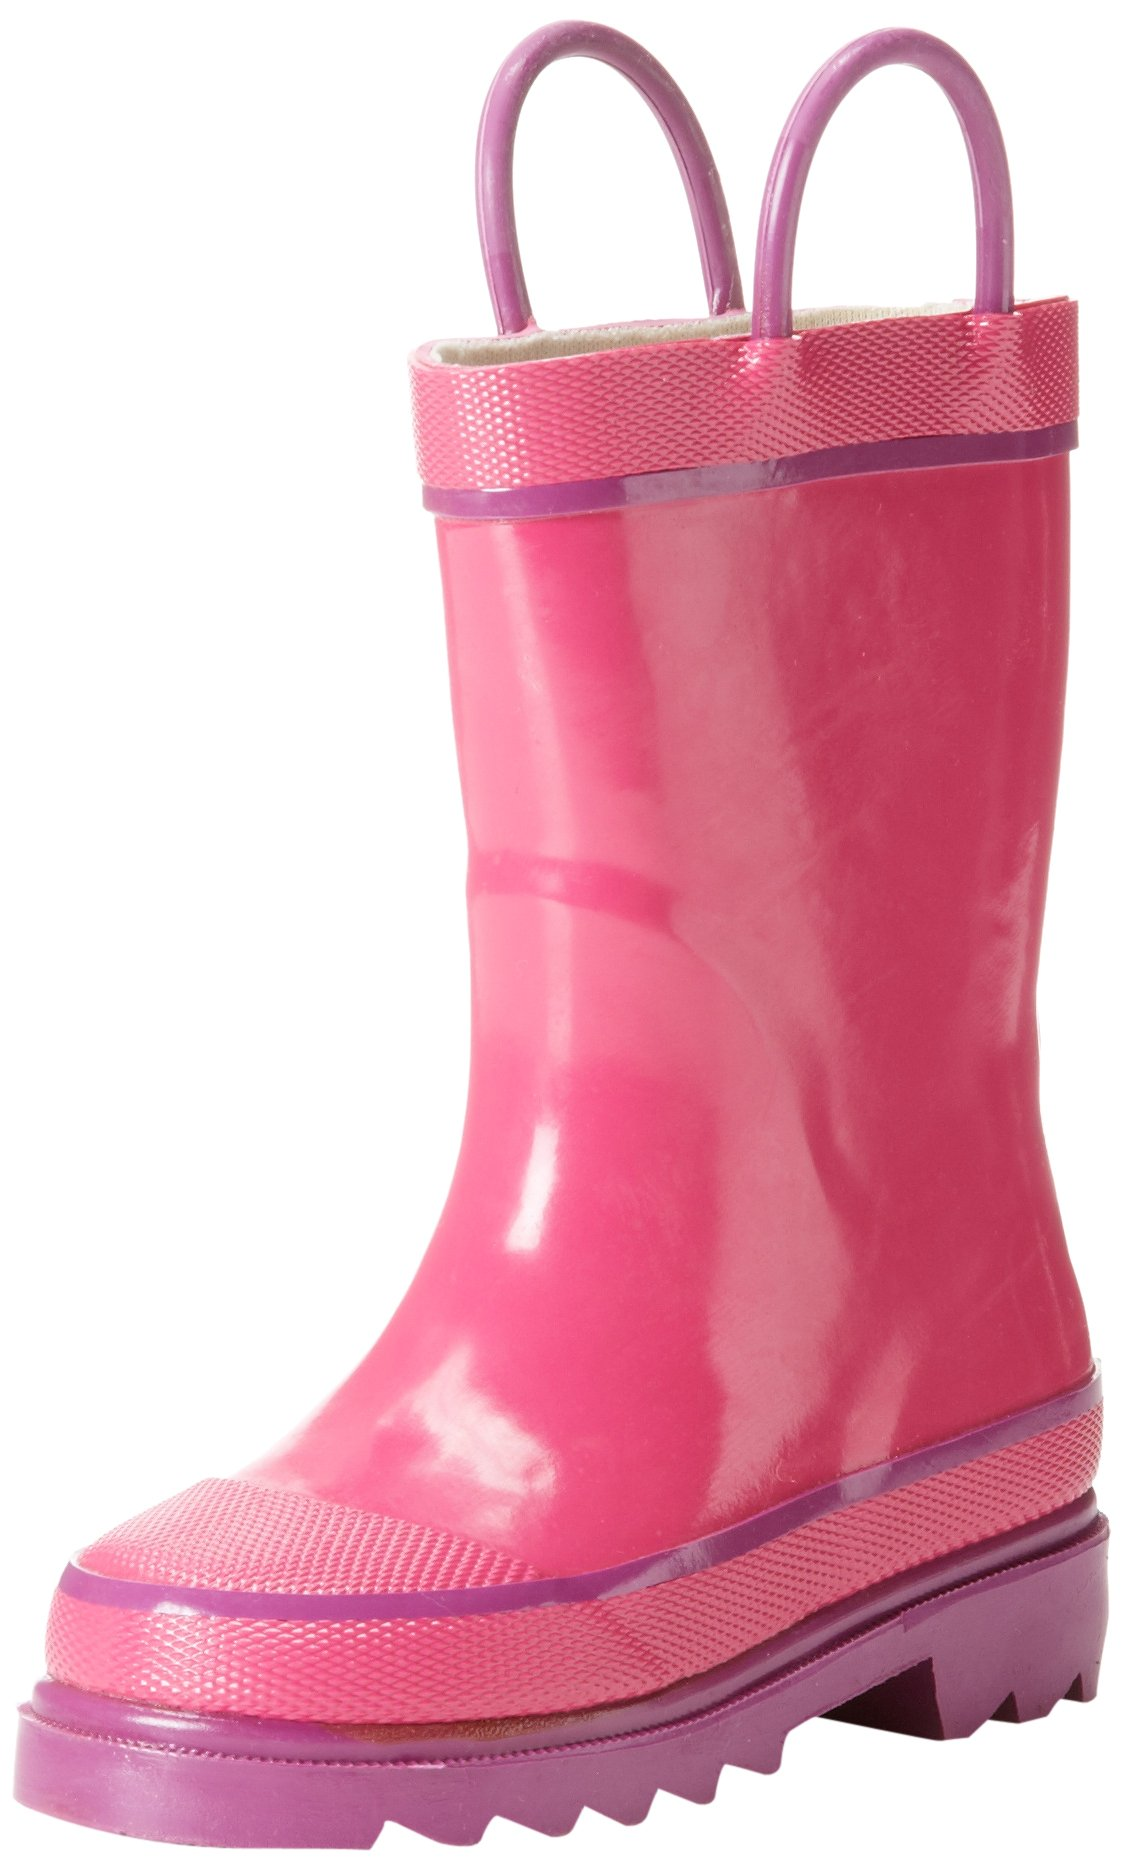 Western Chief Kids Waterproof Rubber Classic Rain Boot with Pull Handles, Pink, 9 M US Toddler